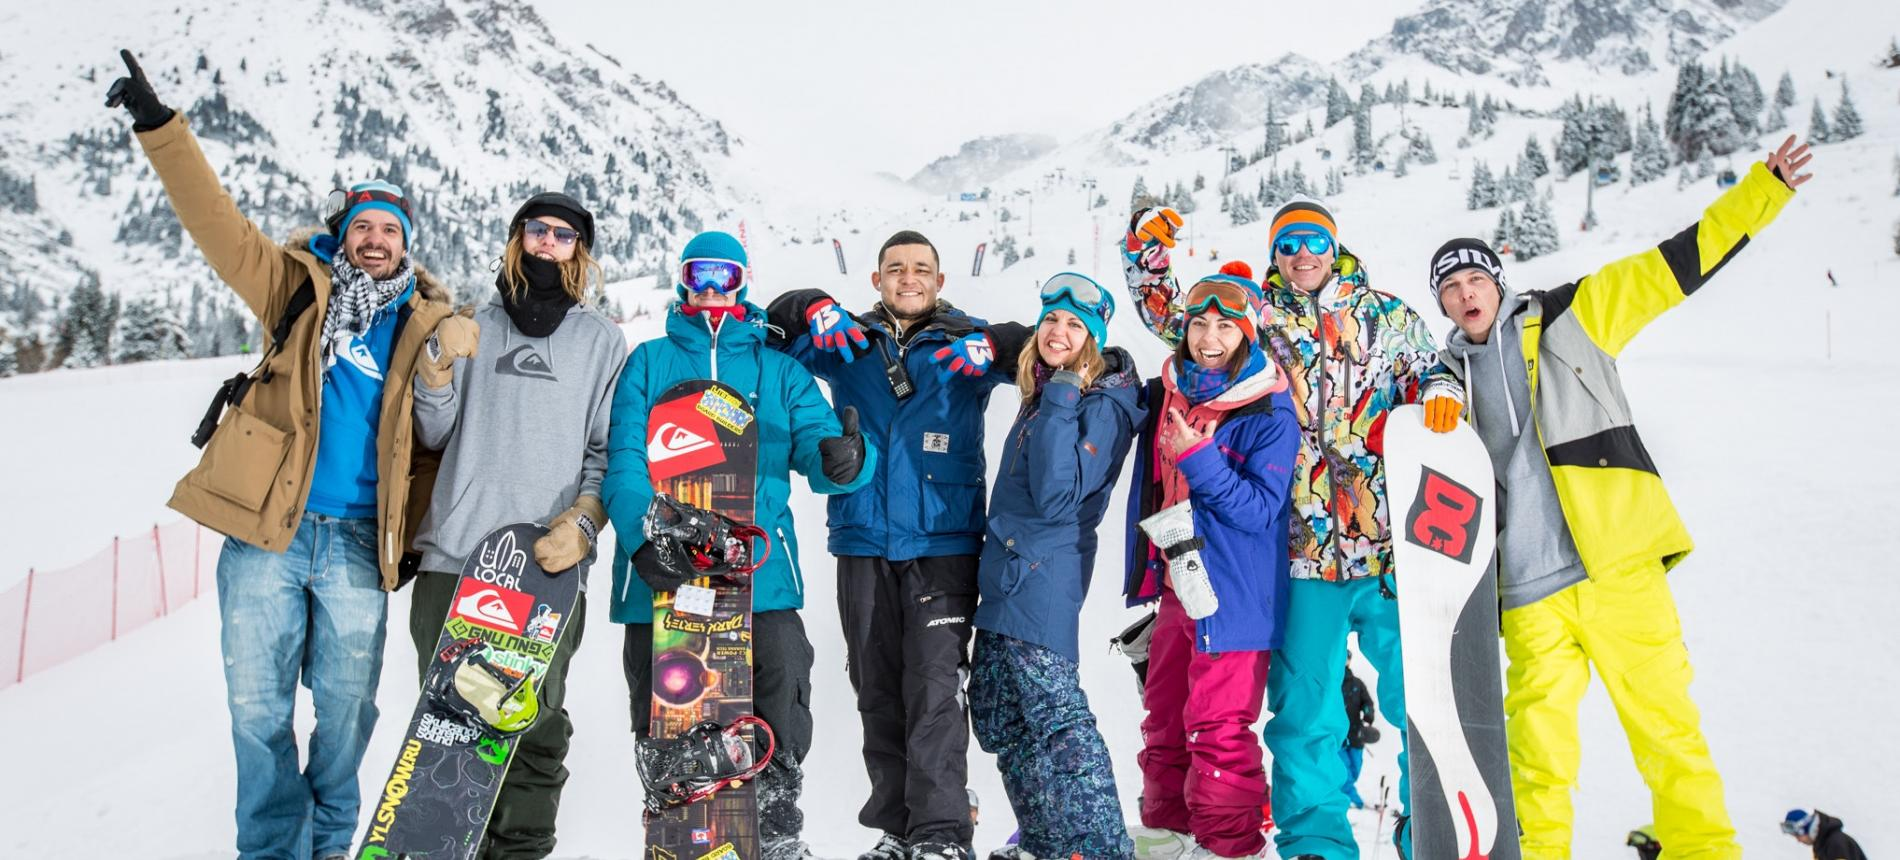 HERO group snowboard stock